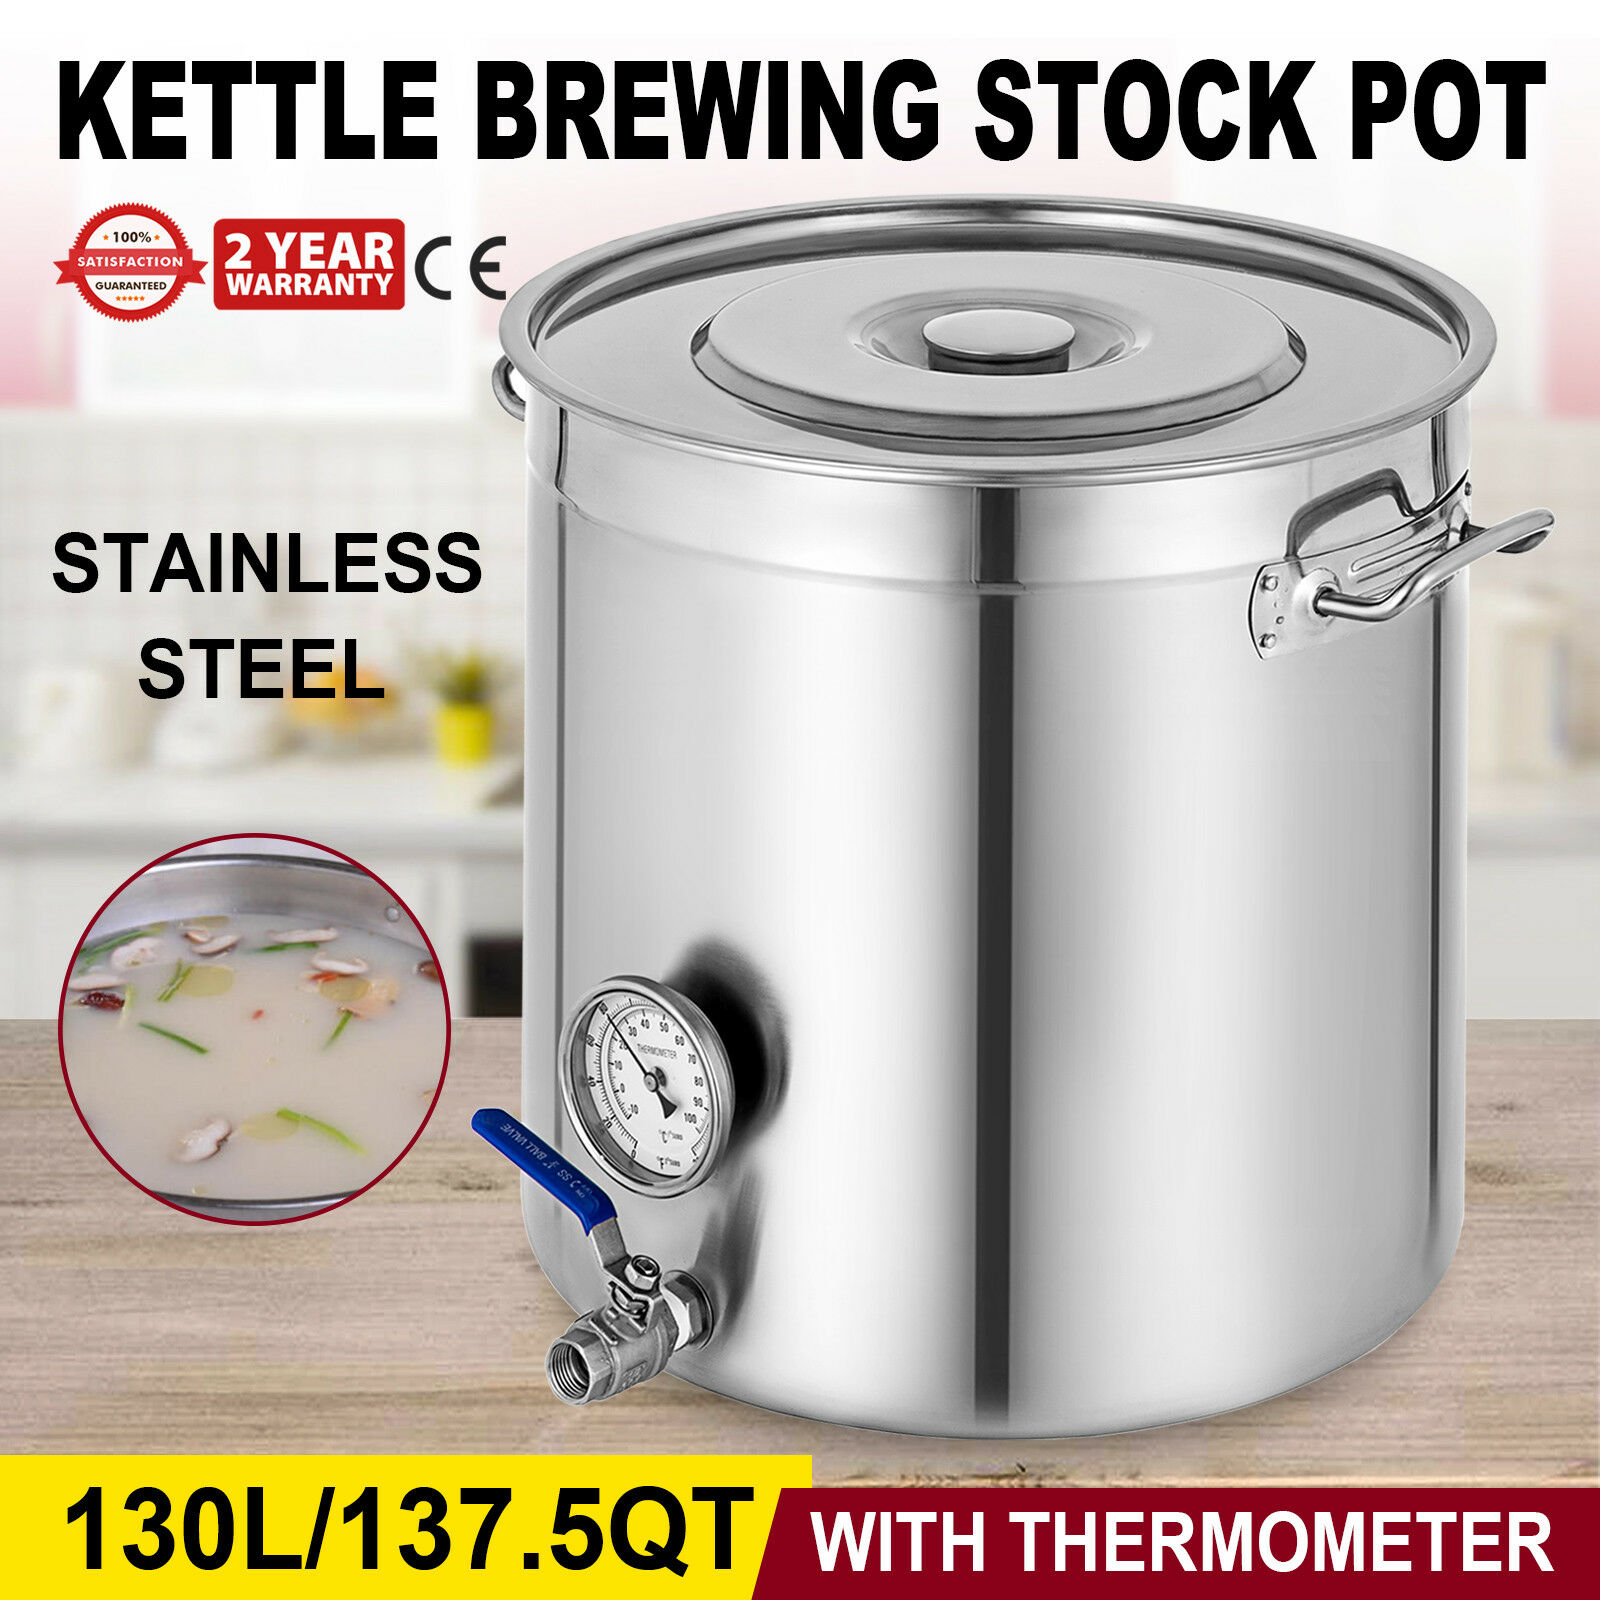 Stainless Steel Home Brew Kettle Brewing Stock Pot Beer TRIPLY BOTTOM 2